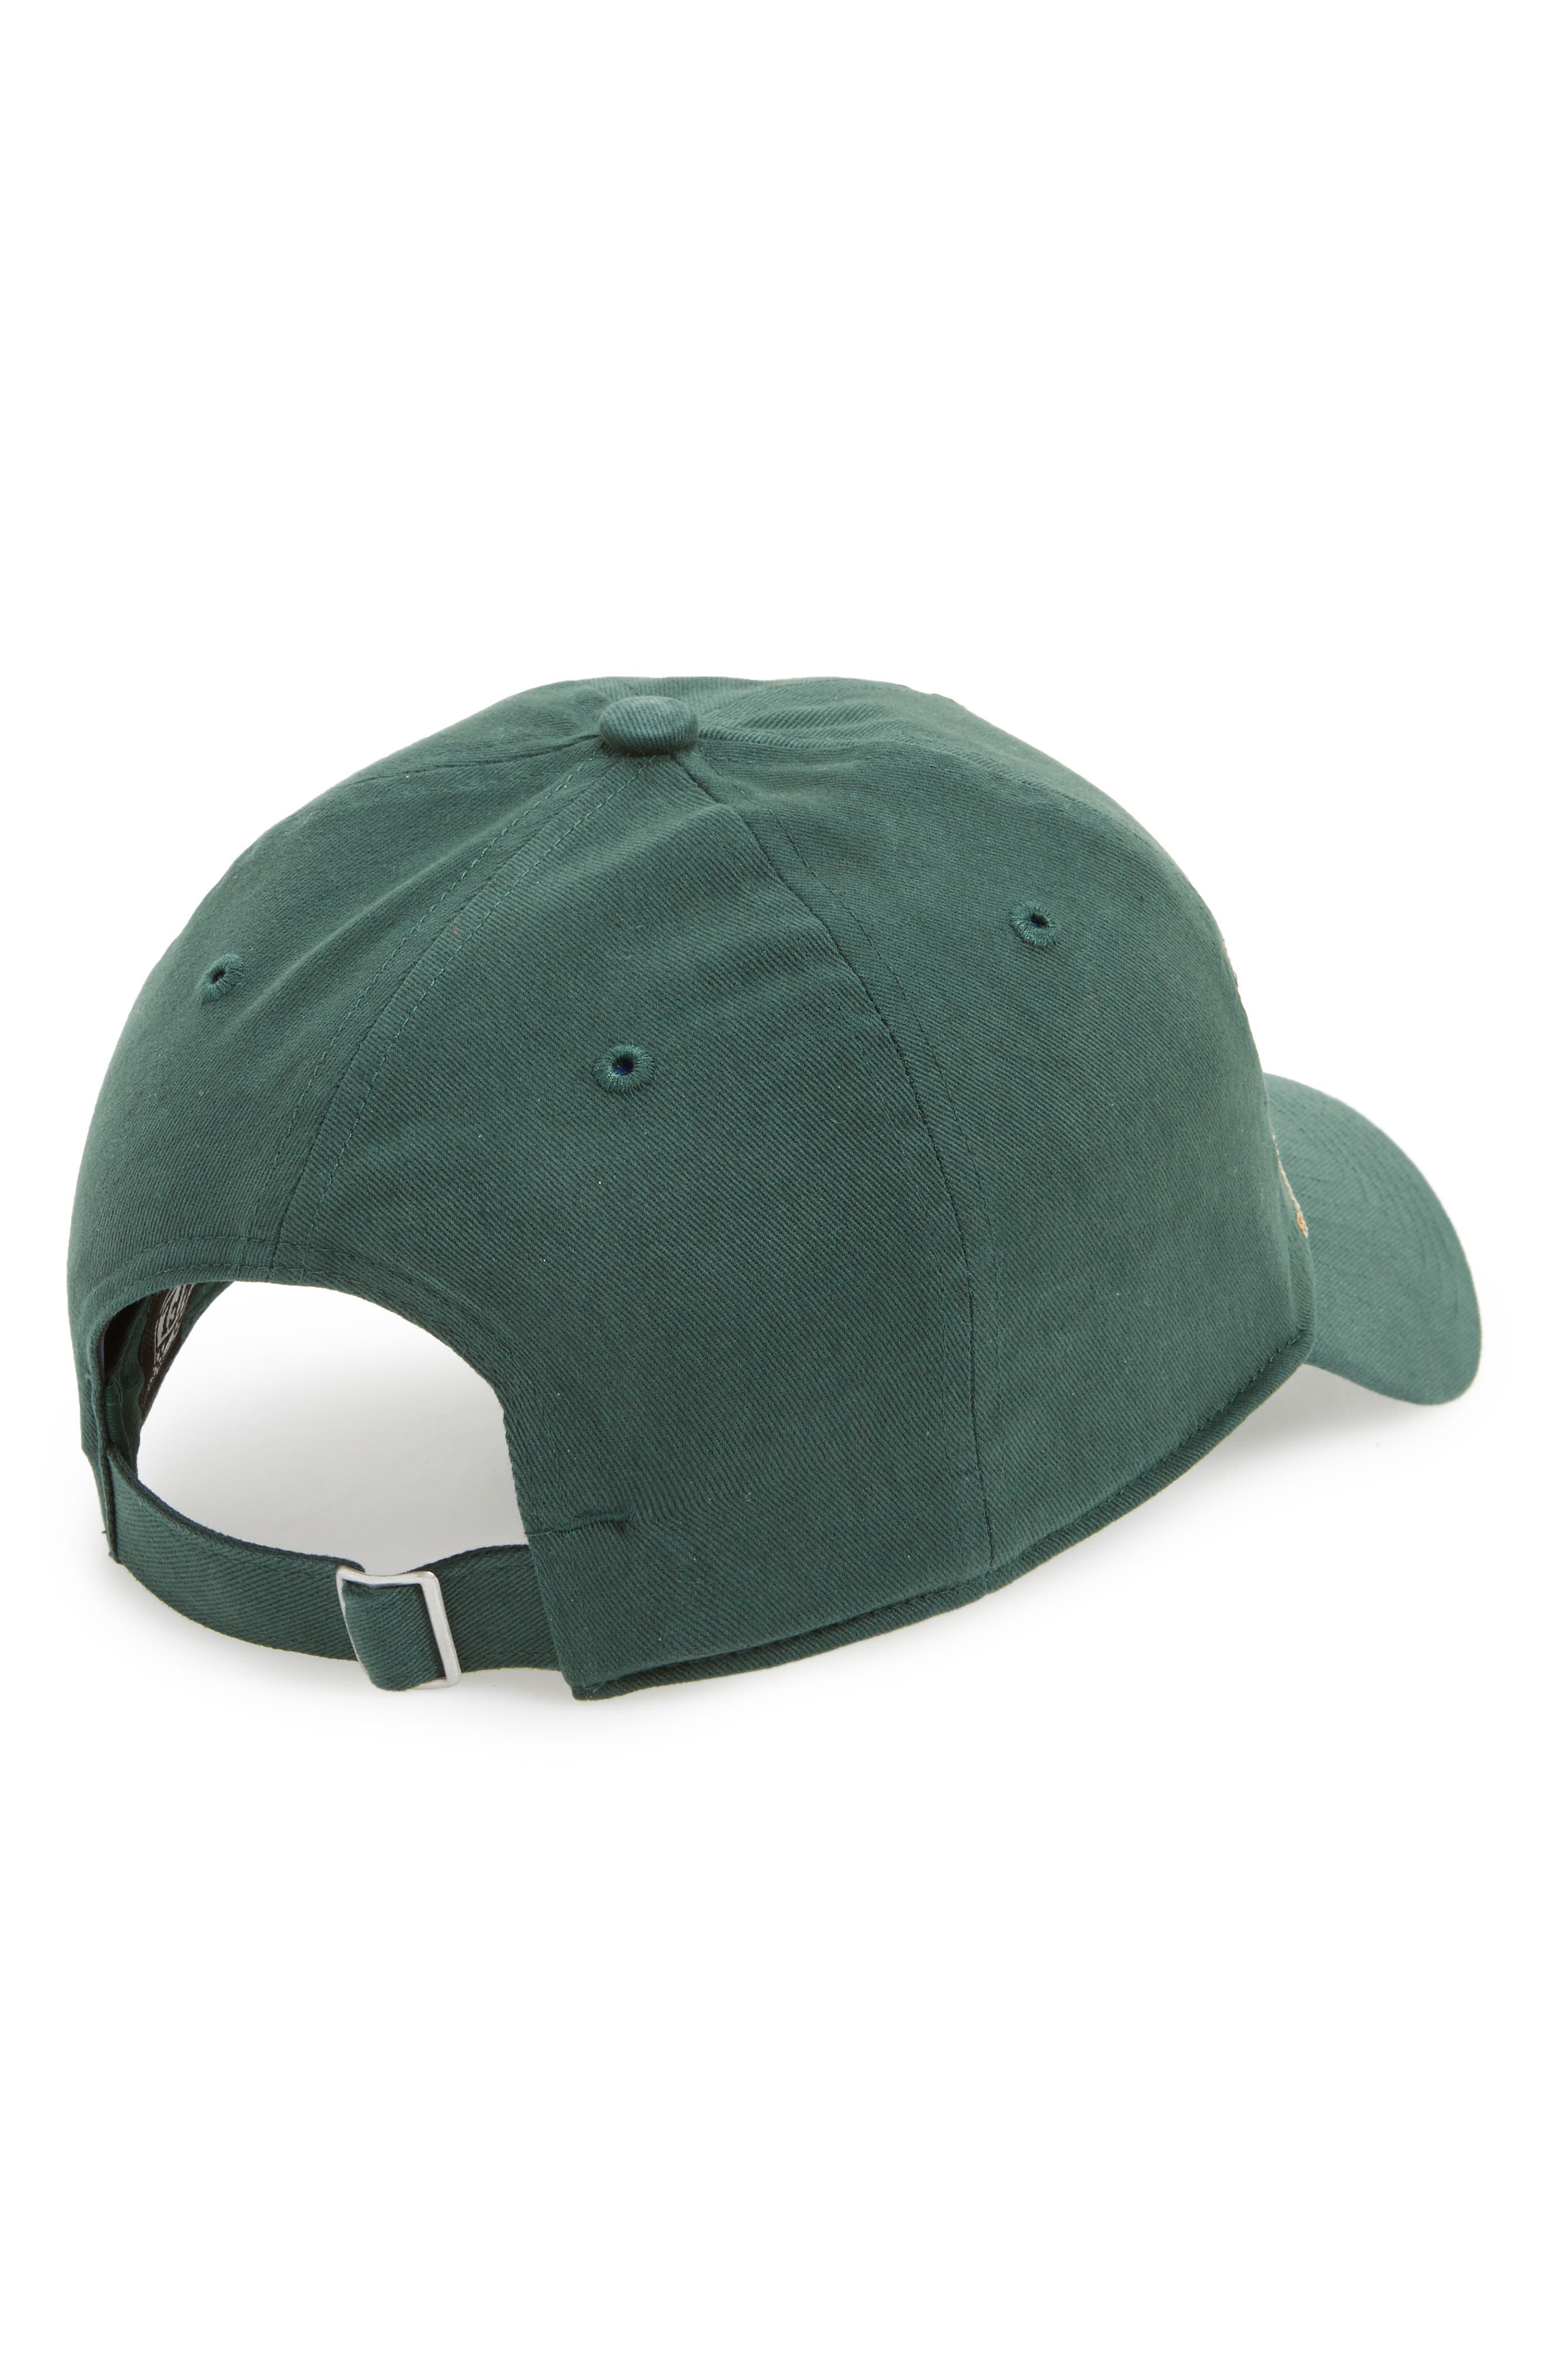 Green Bay Packers Sparkle Cap,                             Alternate thumbnail 2, color,                             301